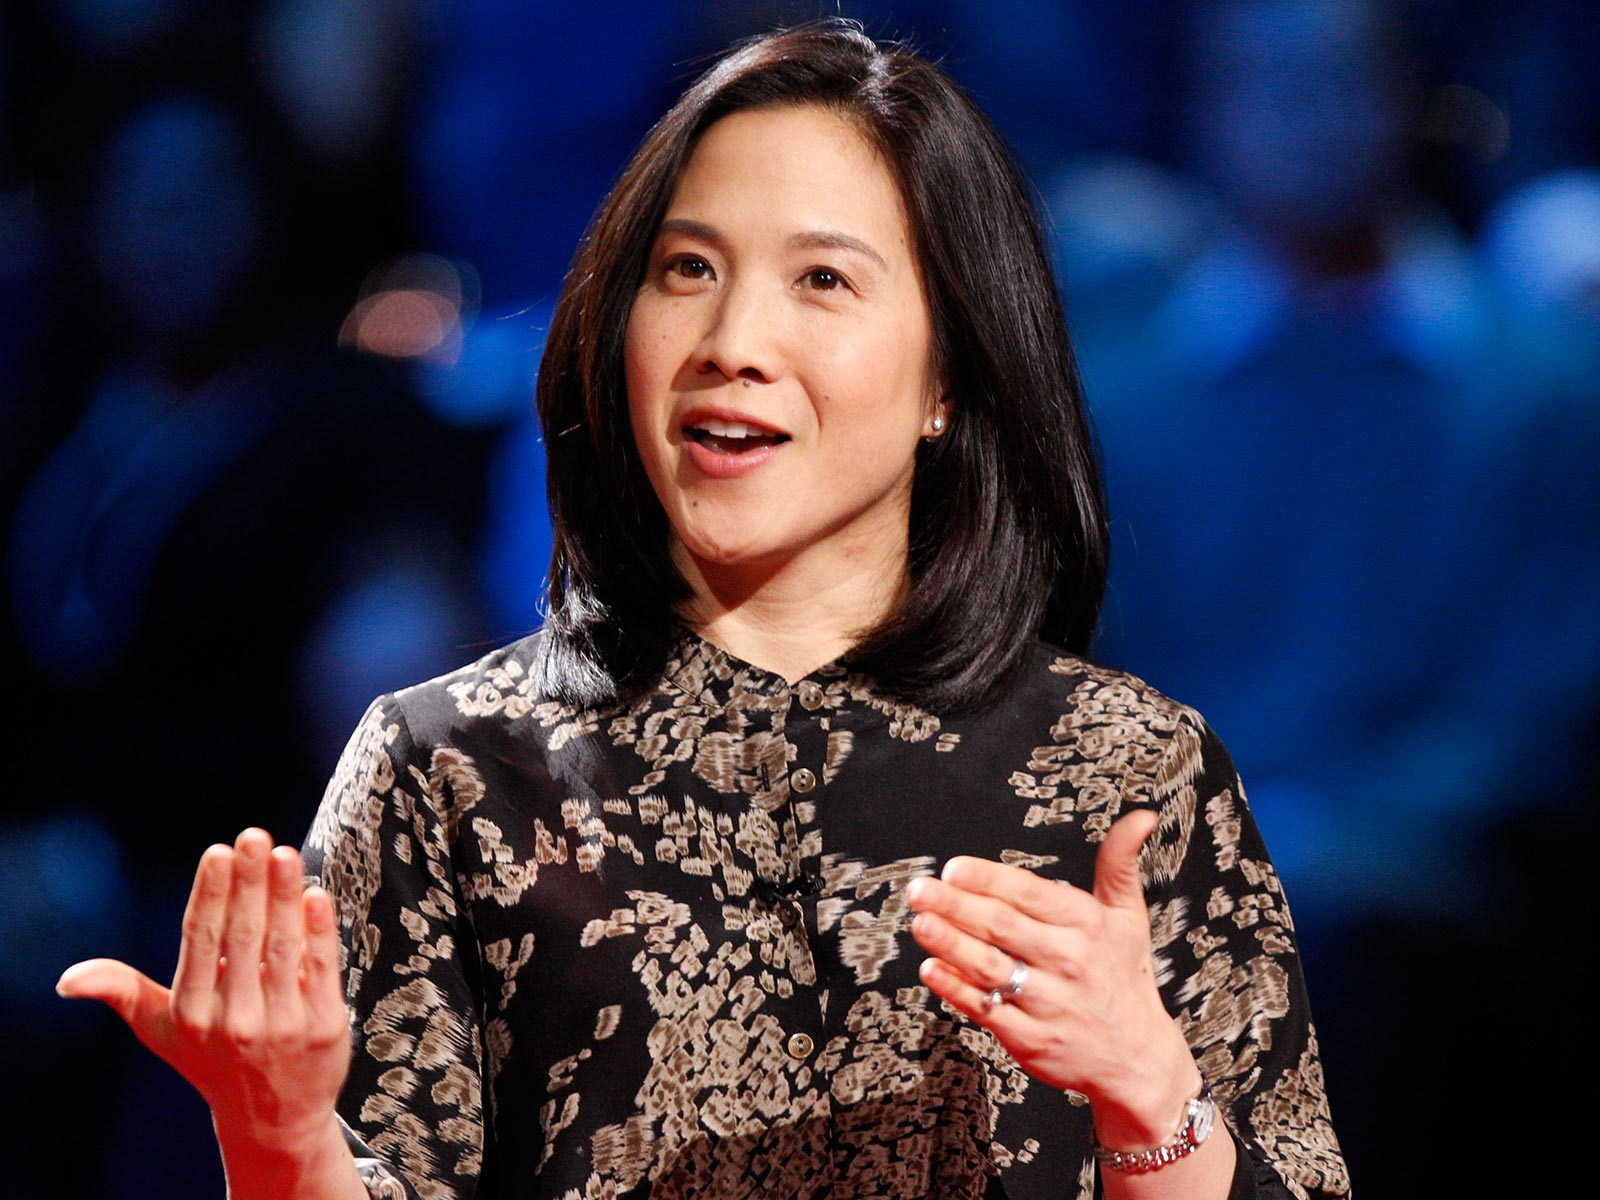 Angela Lee Duckworth: The key to success? Grit | Talk Video | TED.com